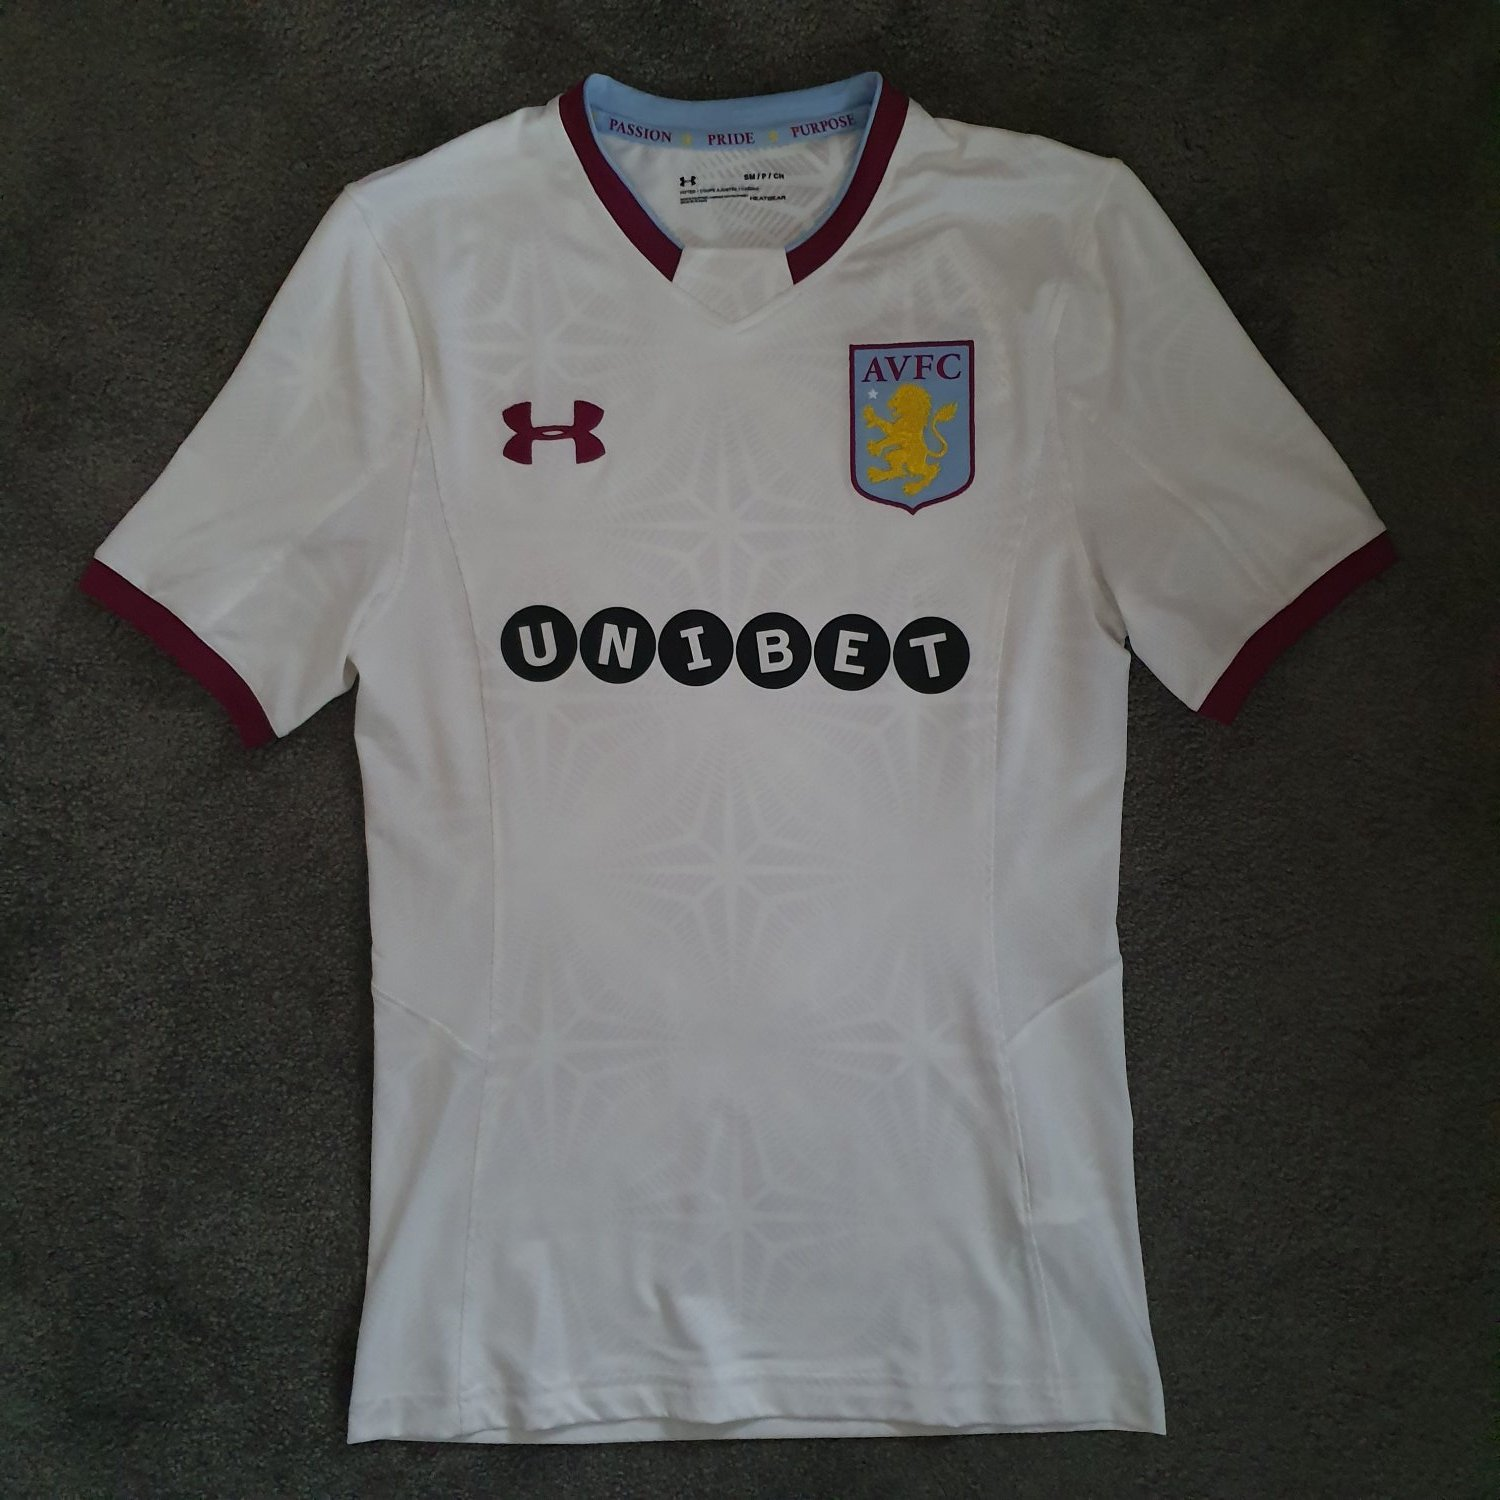 Aston Villa Third Football Shirt 2017 2018 Sponsored By Unibet